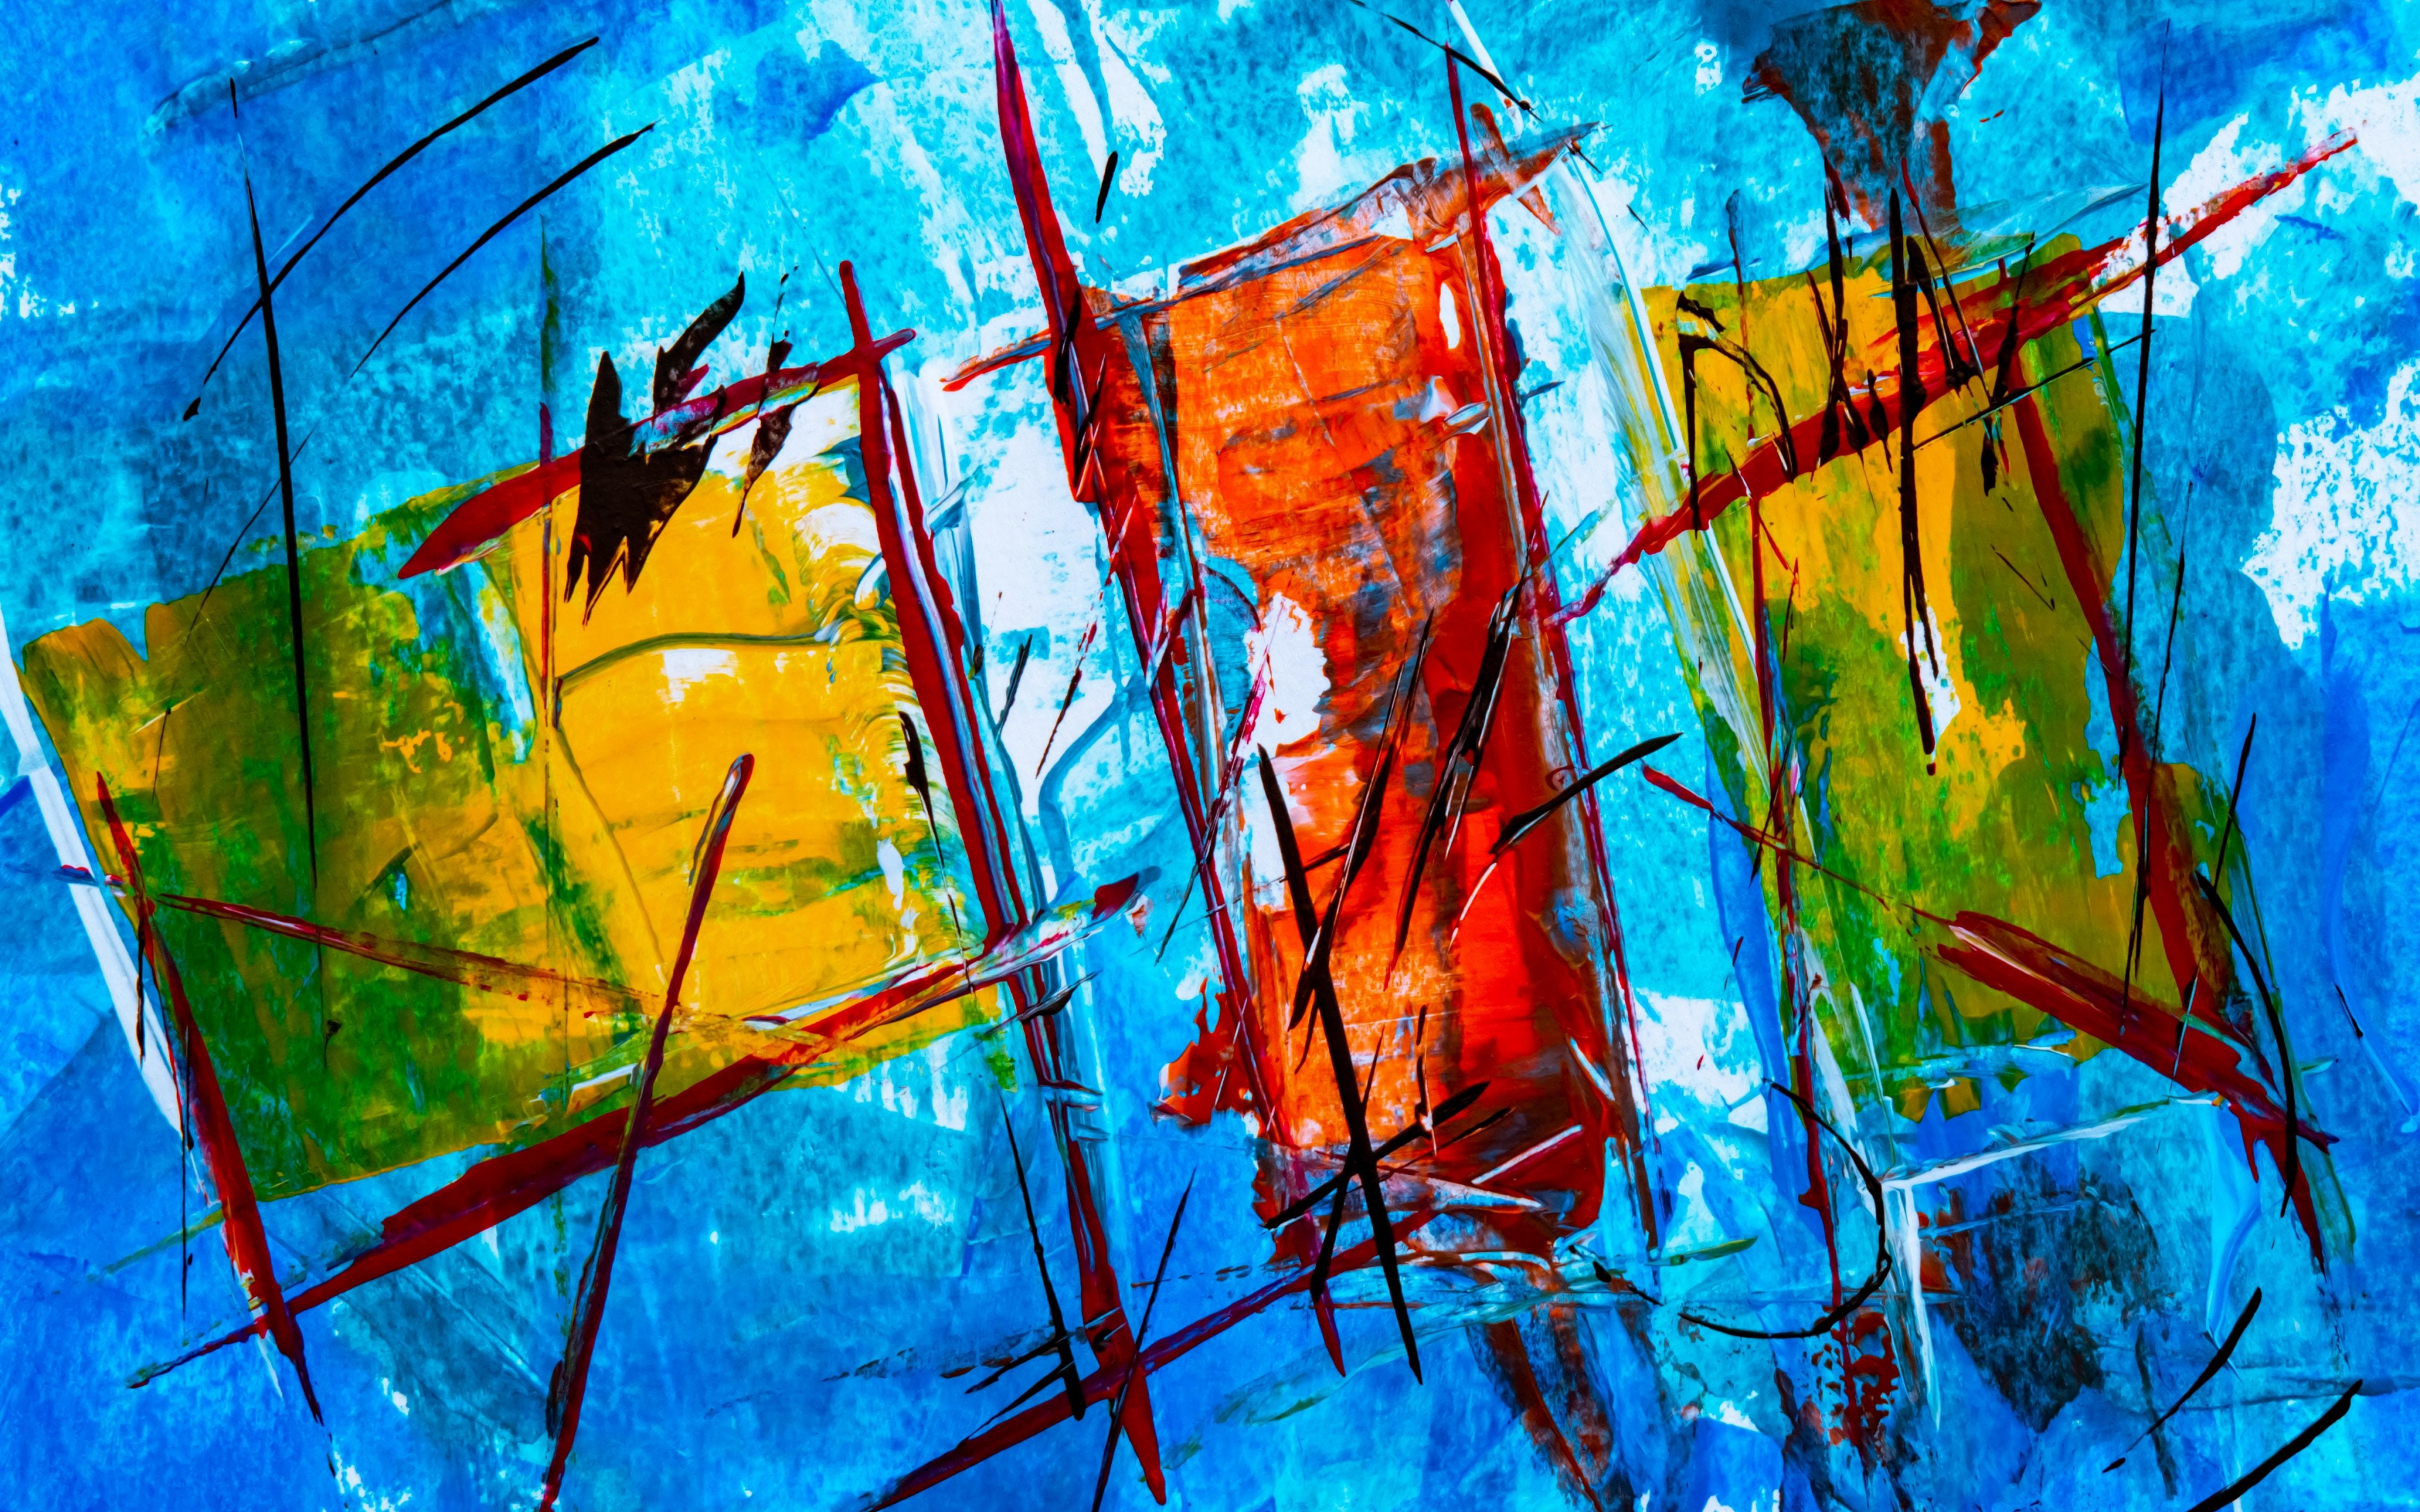 Download 3840x2400 Wallpaper Abstract Colorful Paint Art